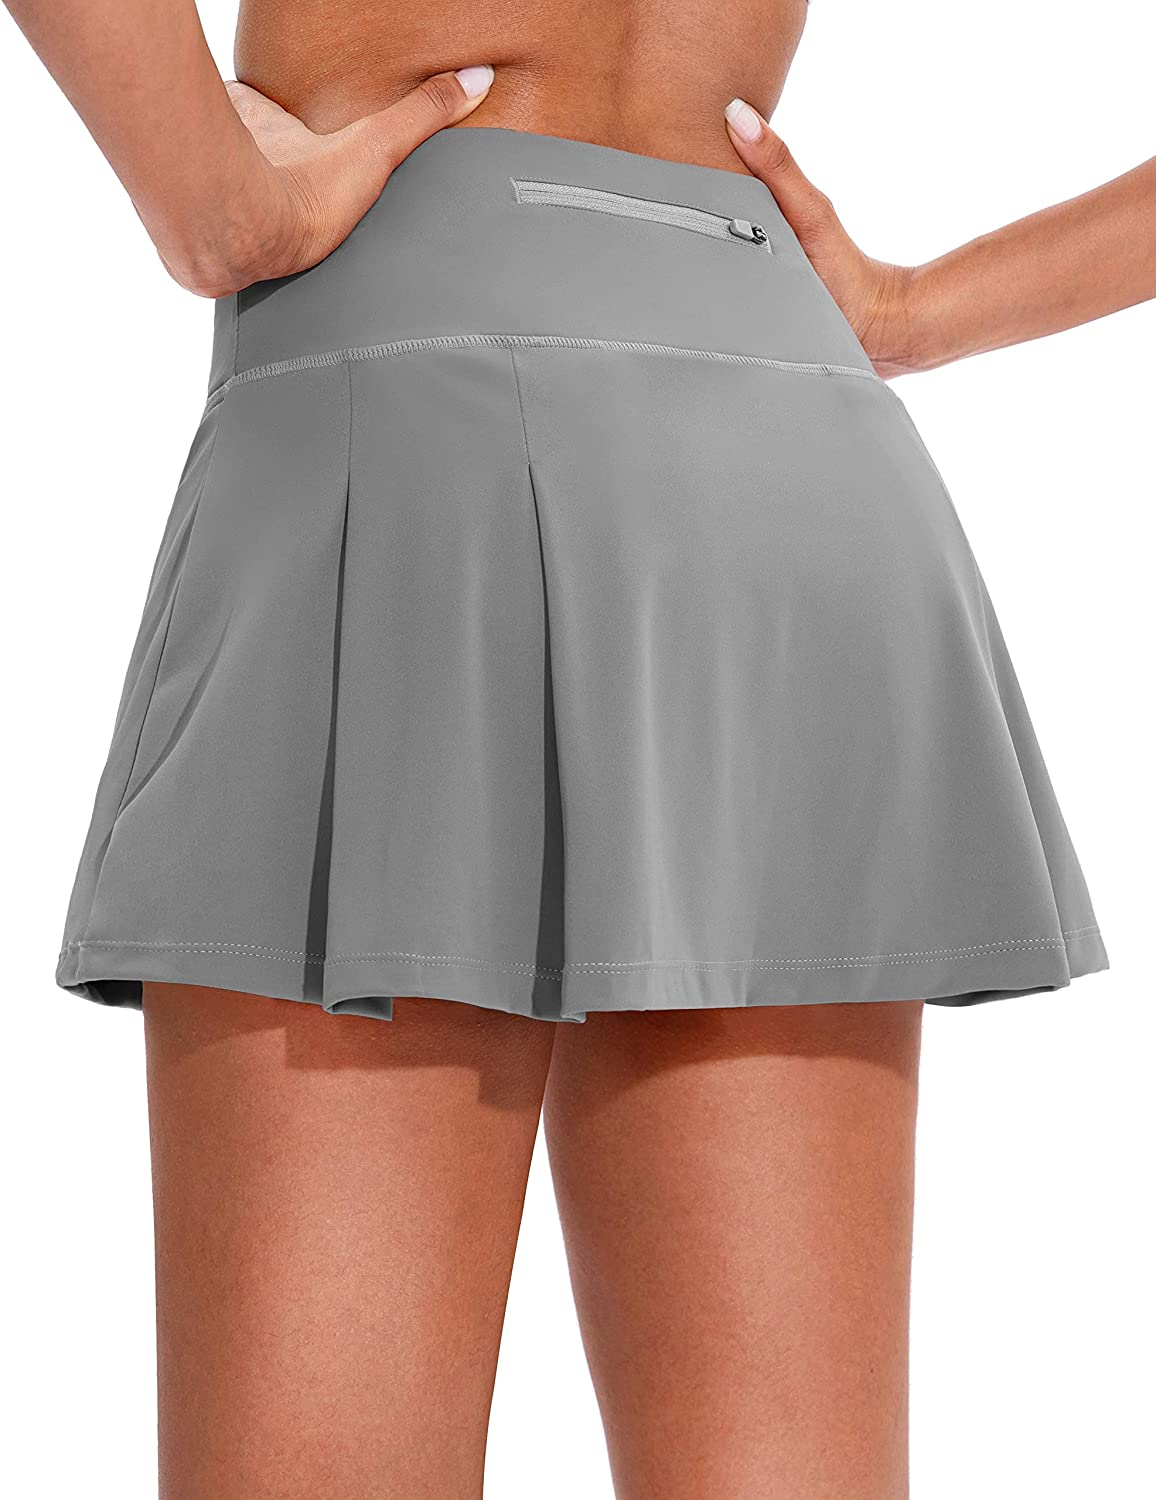 Soothfeel Pleated Max 65% OFF Tennis Skirt for Women's with Women Hi Pockets OFFicial store